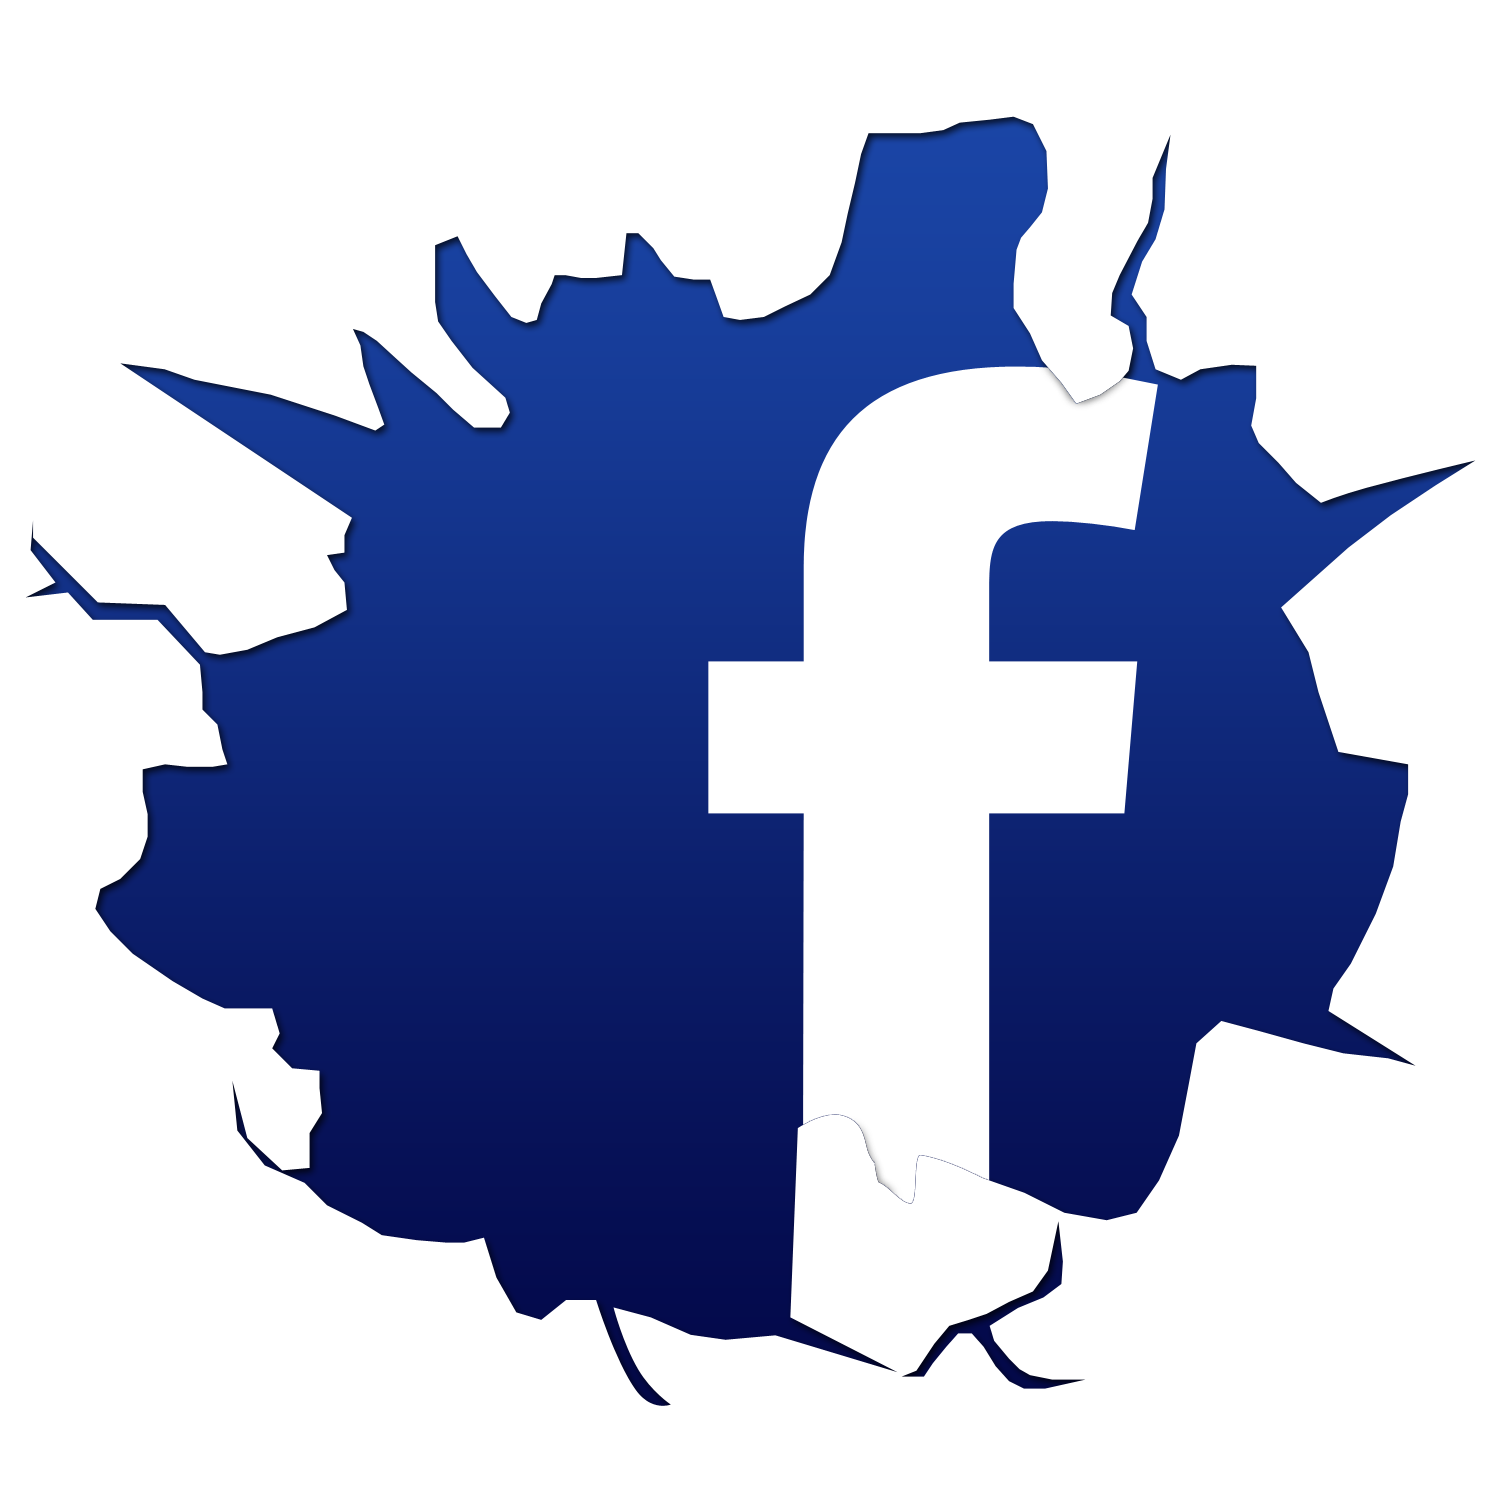 tl_files/logo-Facebook.png